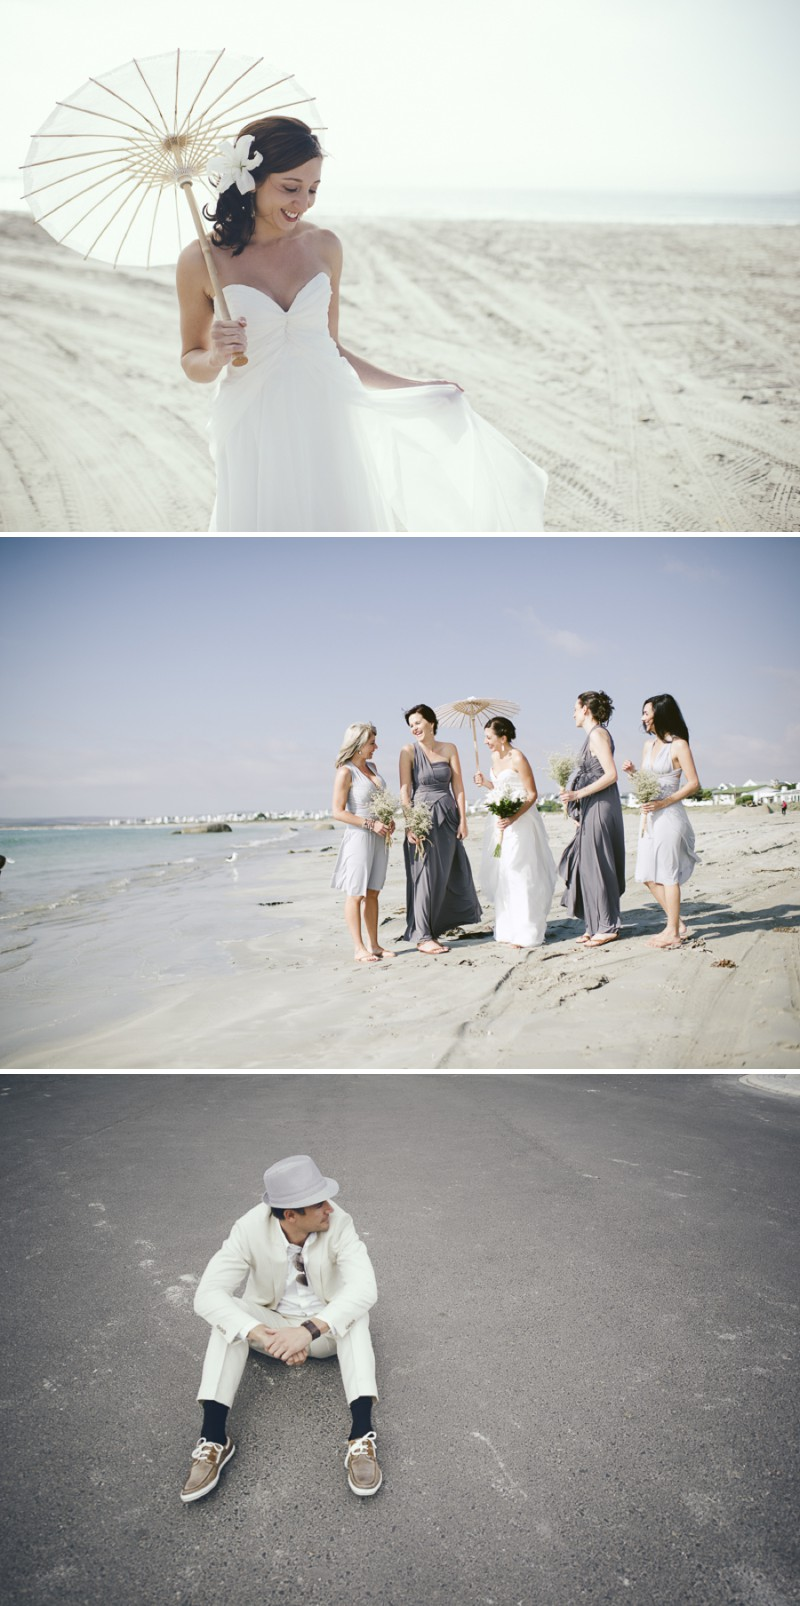 A South African Destination Beach Wedding At Pasternoster Lodge With A Grey Colour Scheme And A Raw Chiffon Bespoke Wedding Dress With A White Lily Bouquet Photographed By Jules Morgan._0009